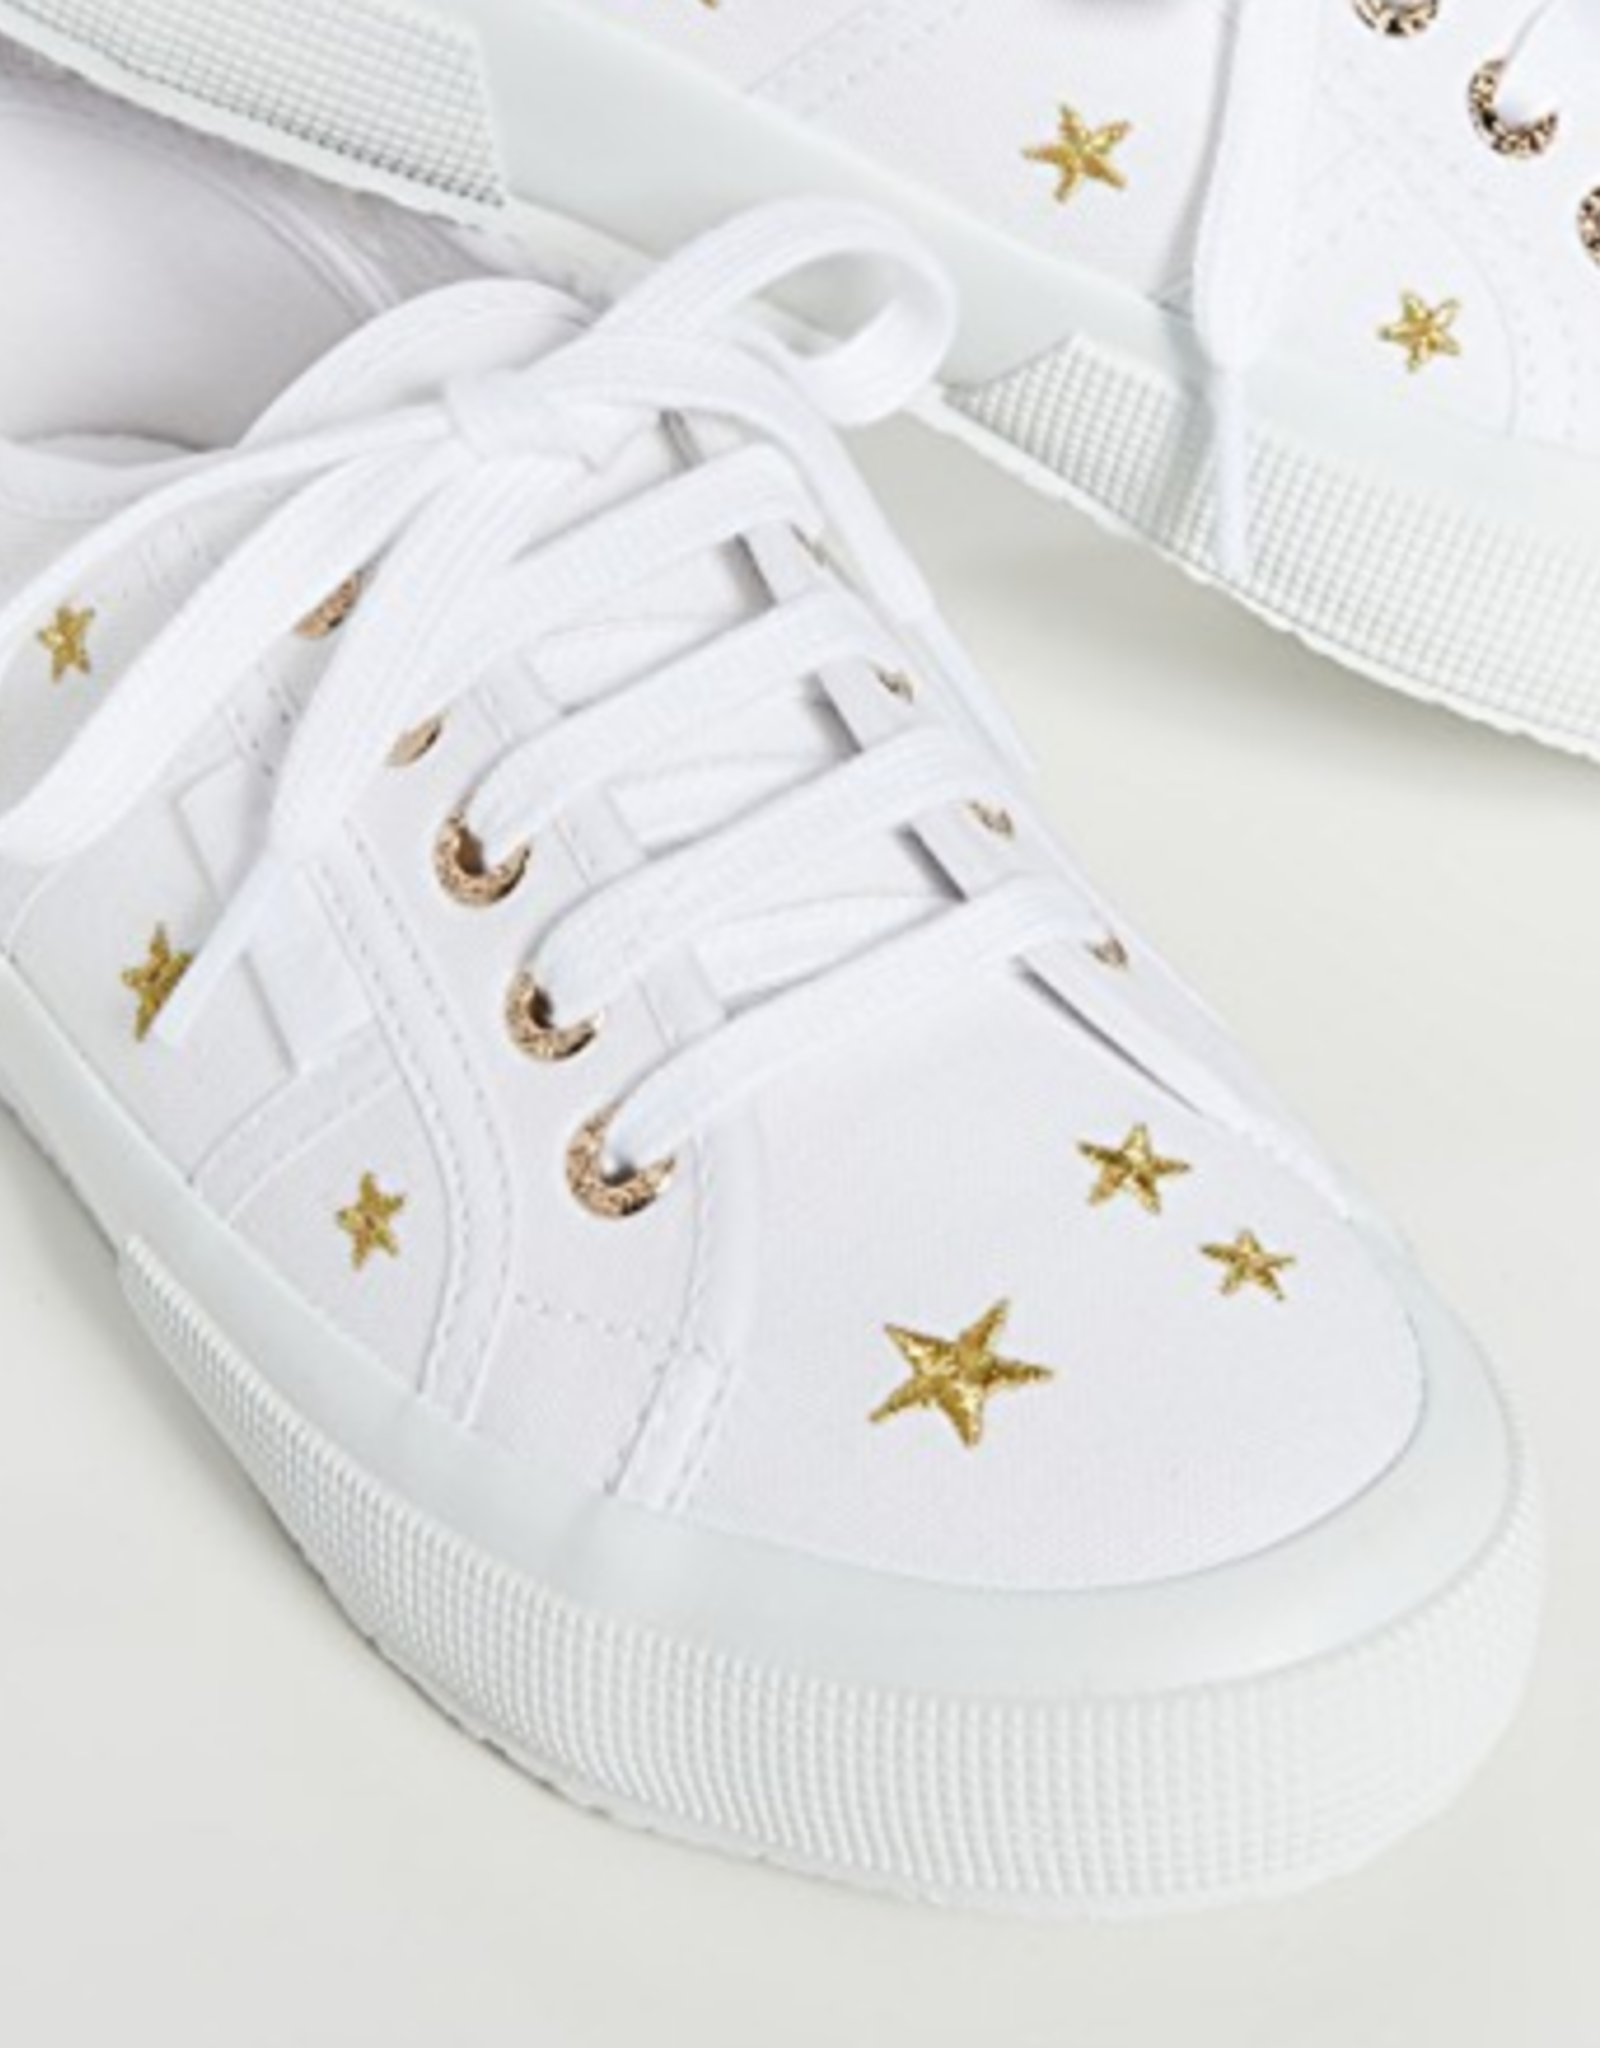 Superga Embroidered Star Sneakers